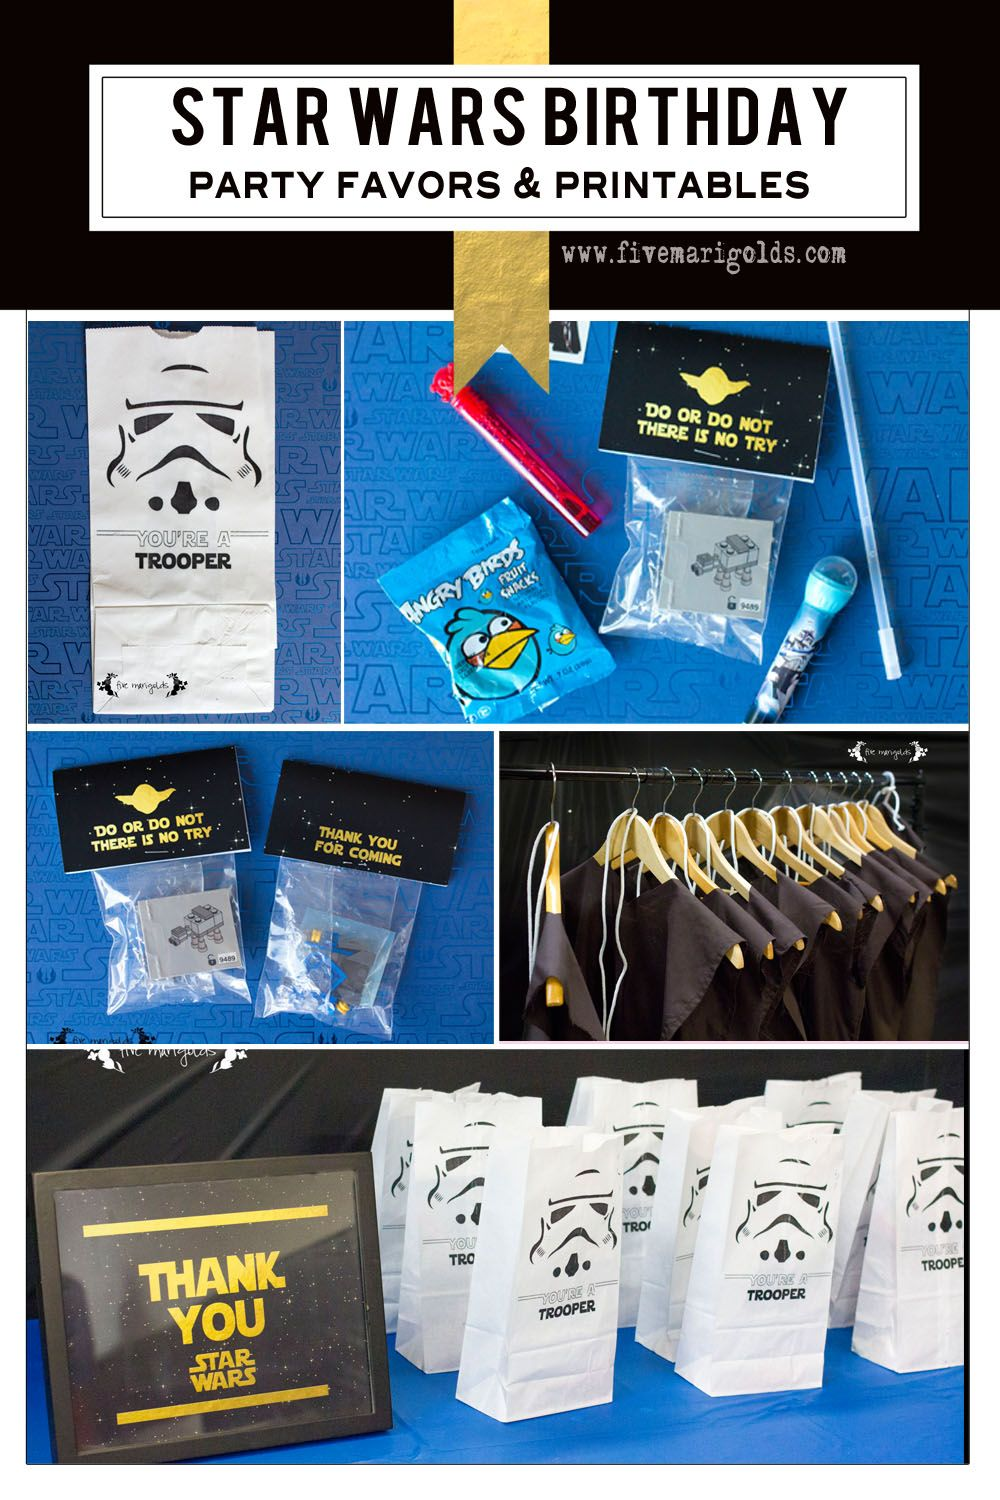 Star Wars Birthday Party Part II Party Favors Training academy